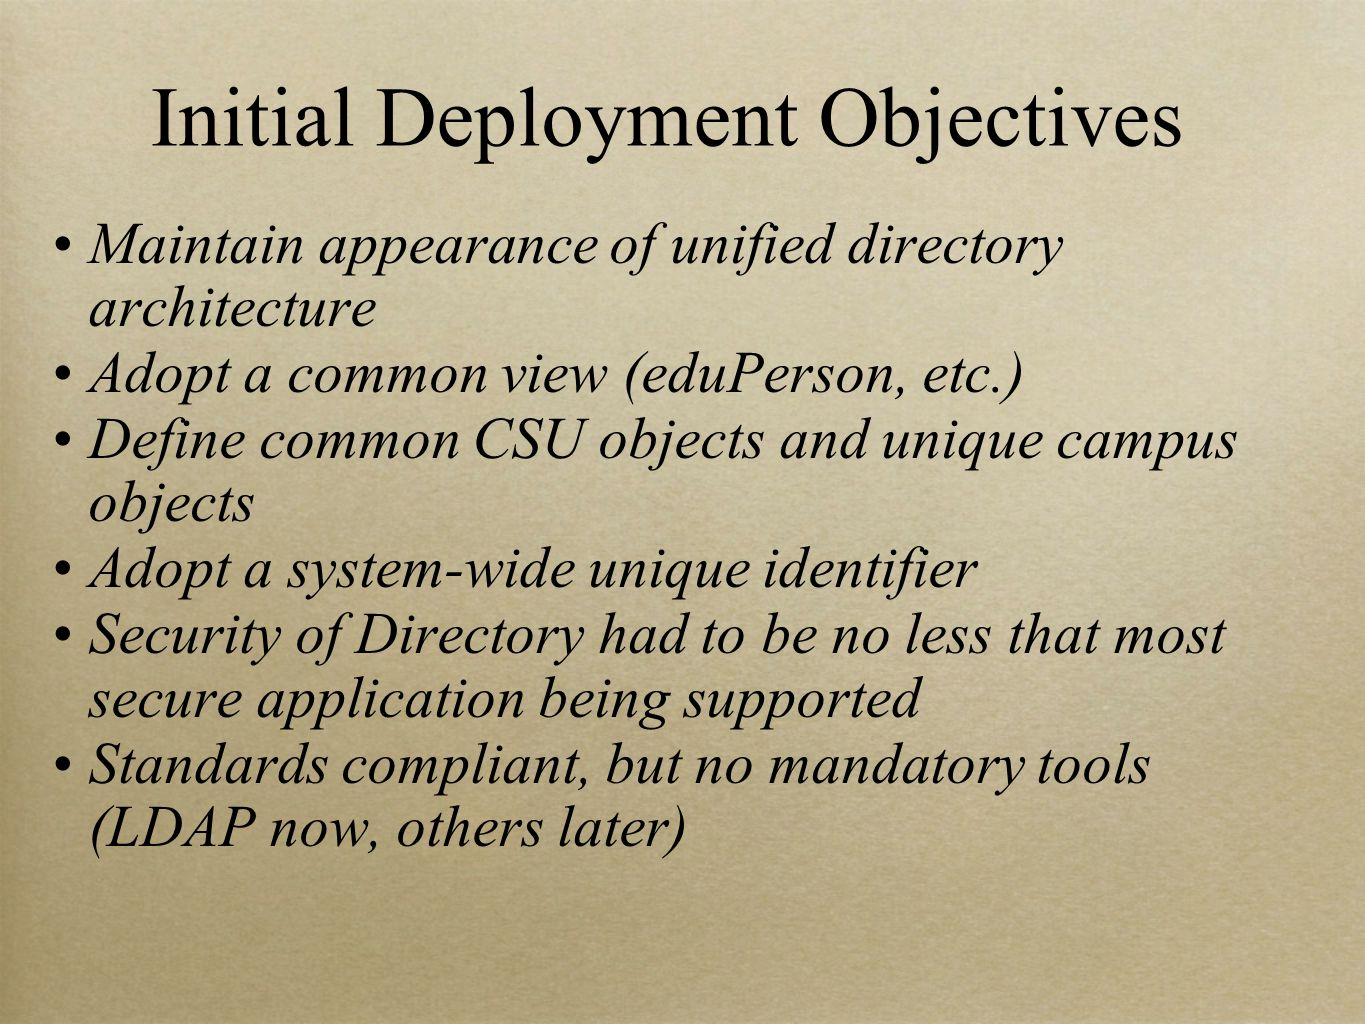 Initial Deployment Objectives Maintain appearance of unified directory architecture Adopt a common view (eduPerson, etc.) Define common CSU objects and unique campus objects Adopt a system-wide unique identifier Security of Directory had to be no less that most secure application being supported Standards compliant, but no mandatory tools (LDAP now, others later)